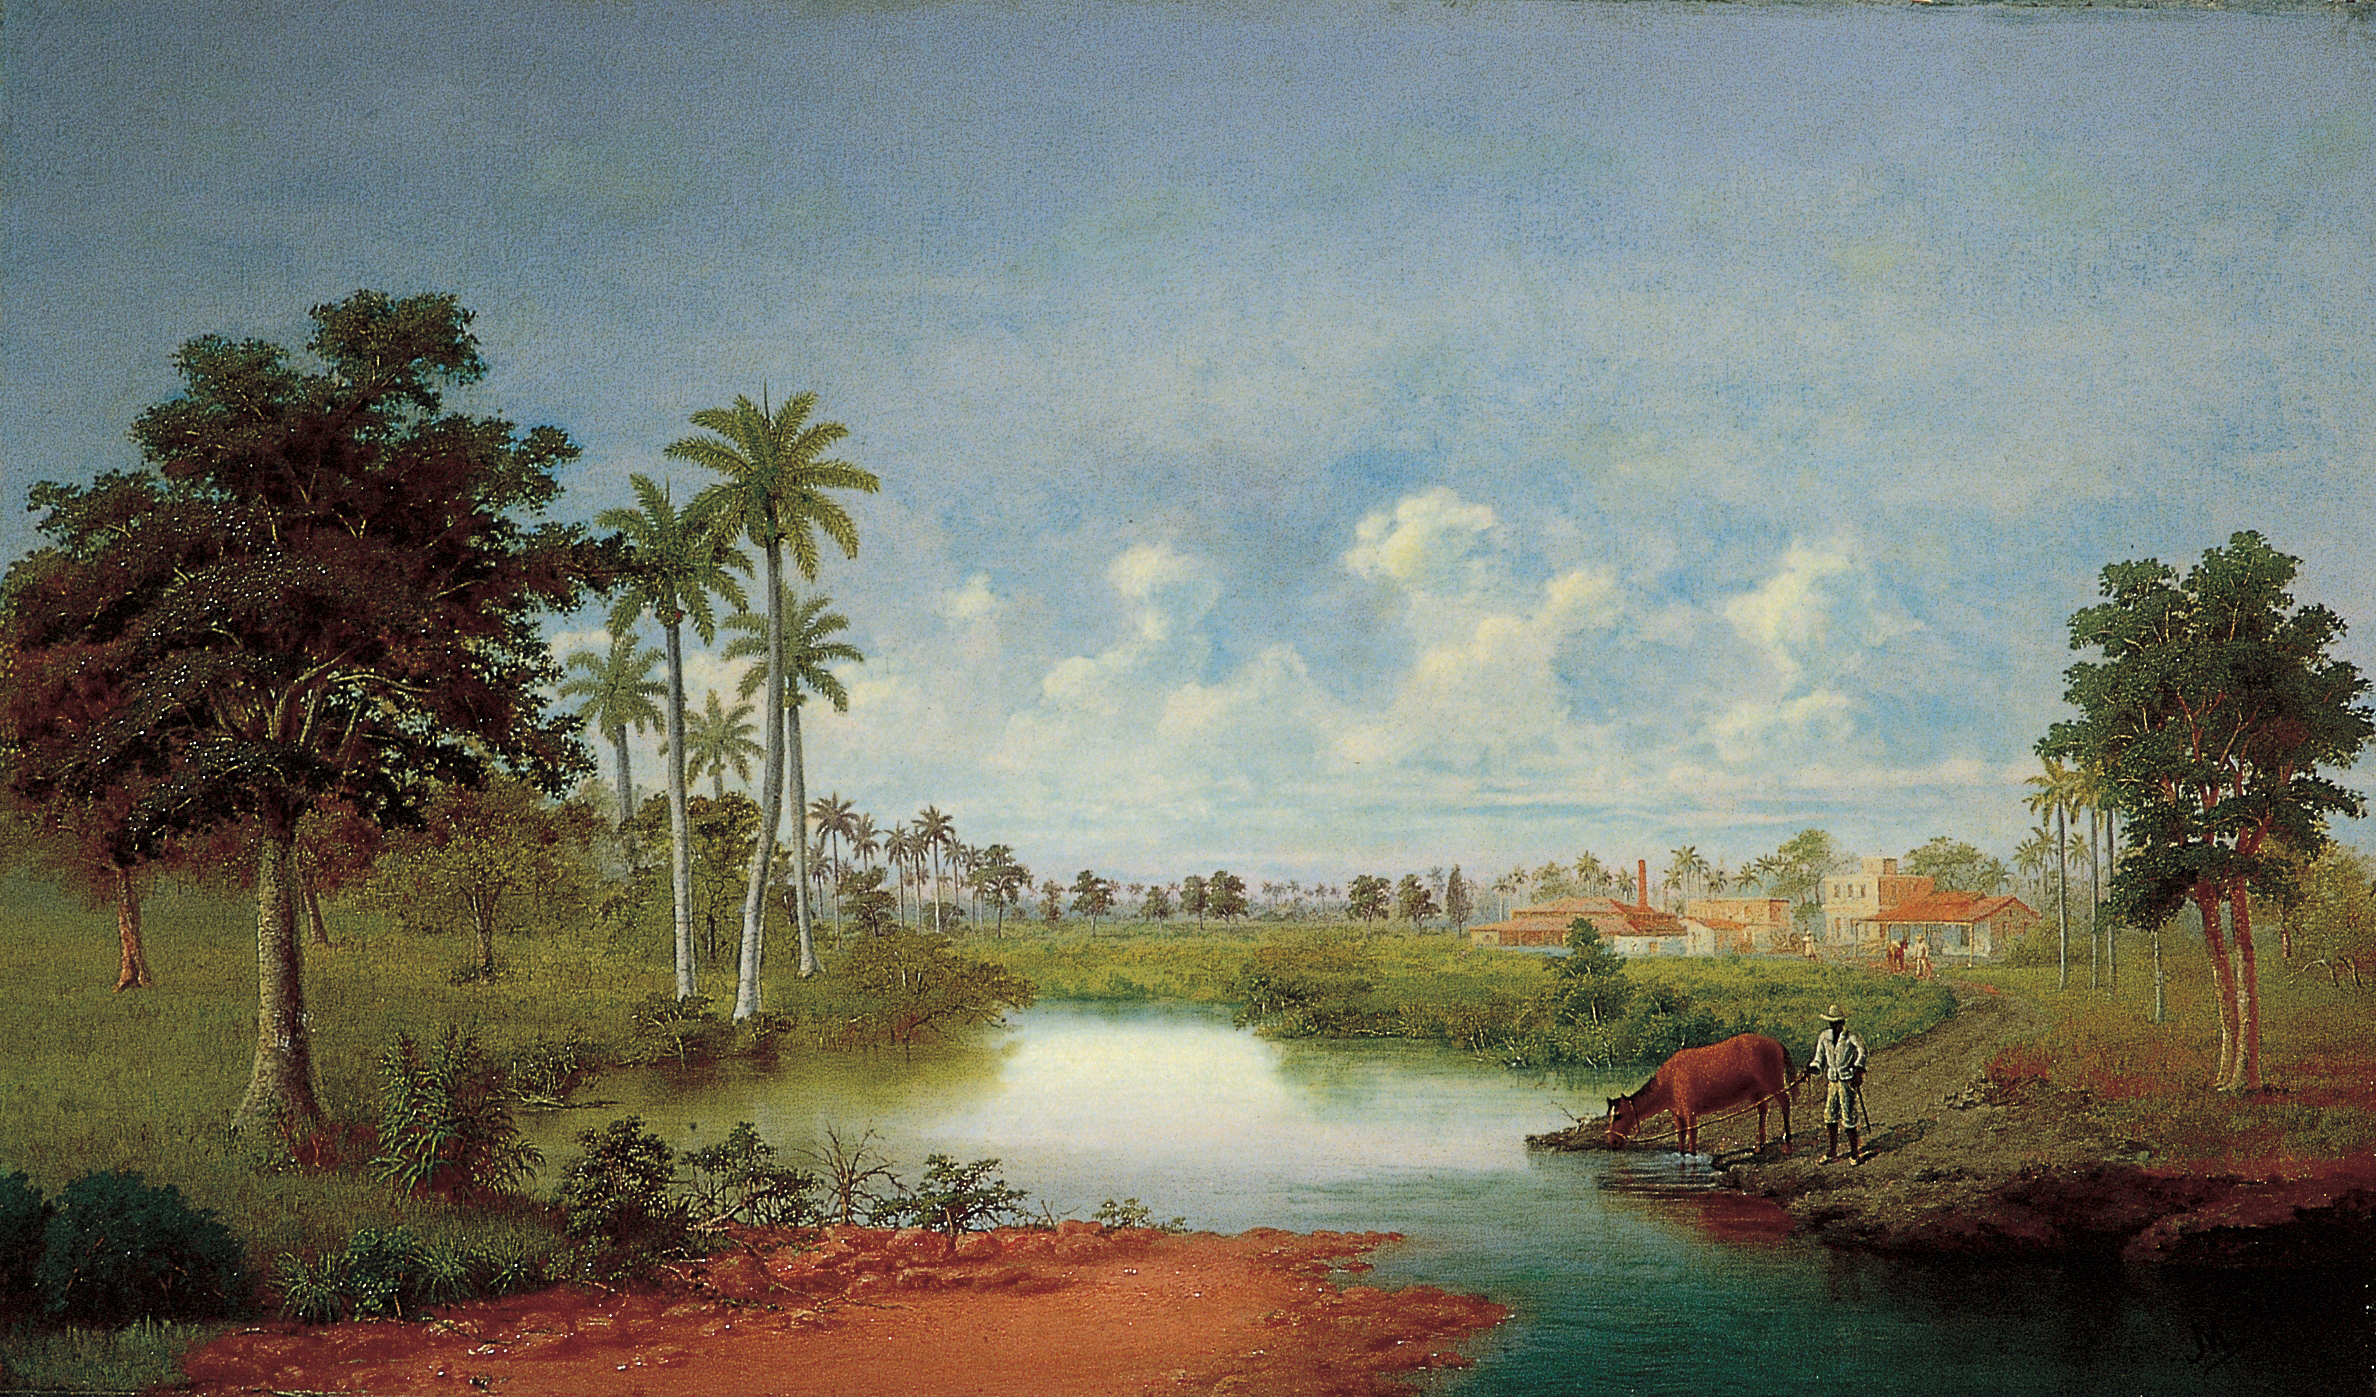 Included in the Daytona Beach collection is 'Cuban Landscape' by Miguel Arias. Courtesy Cuban Foundation Museum, Museum of Arts & Sciences